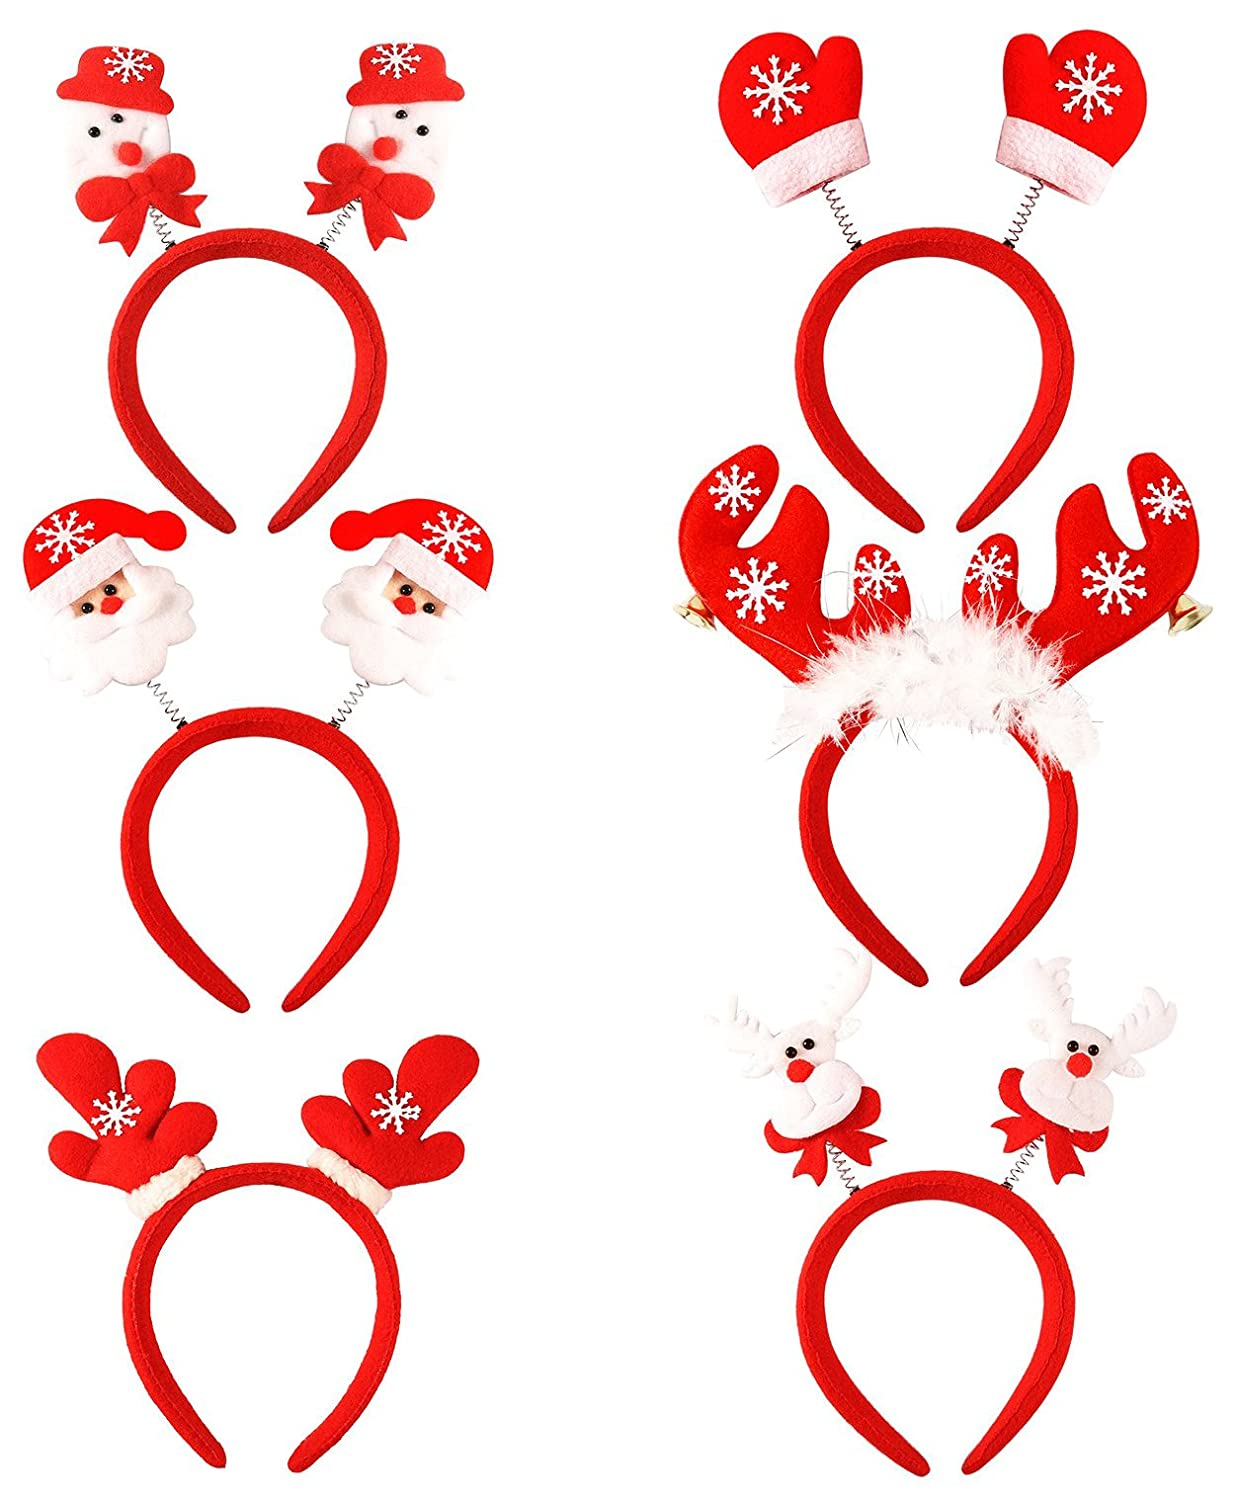 Aneco 6 Pack Christmas Toys Headbands Santa Headbands Reindeer Antlers Headband for Cosplay or Christmas Party Supplies